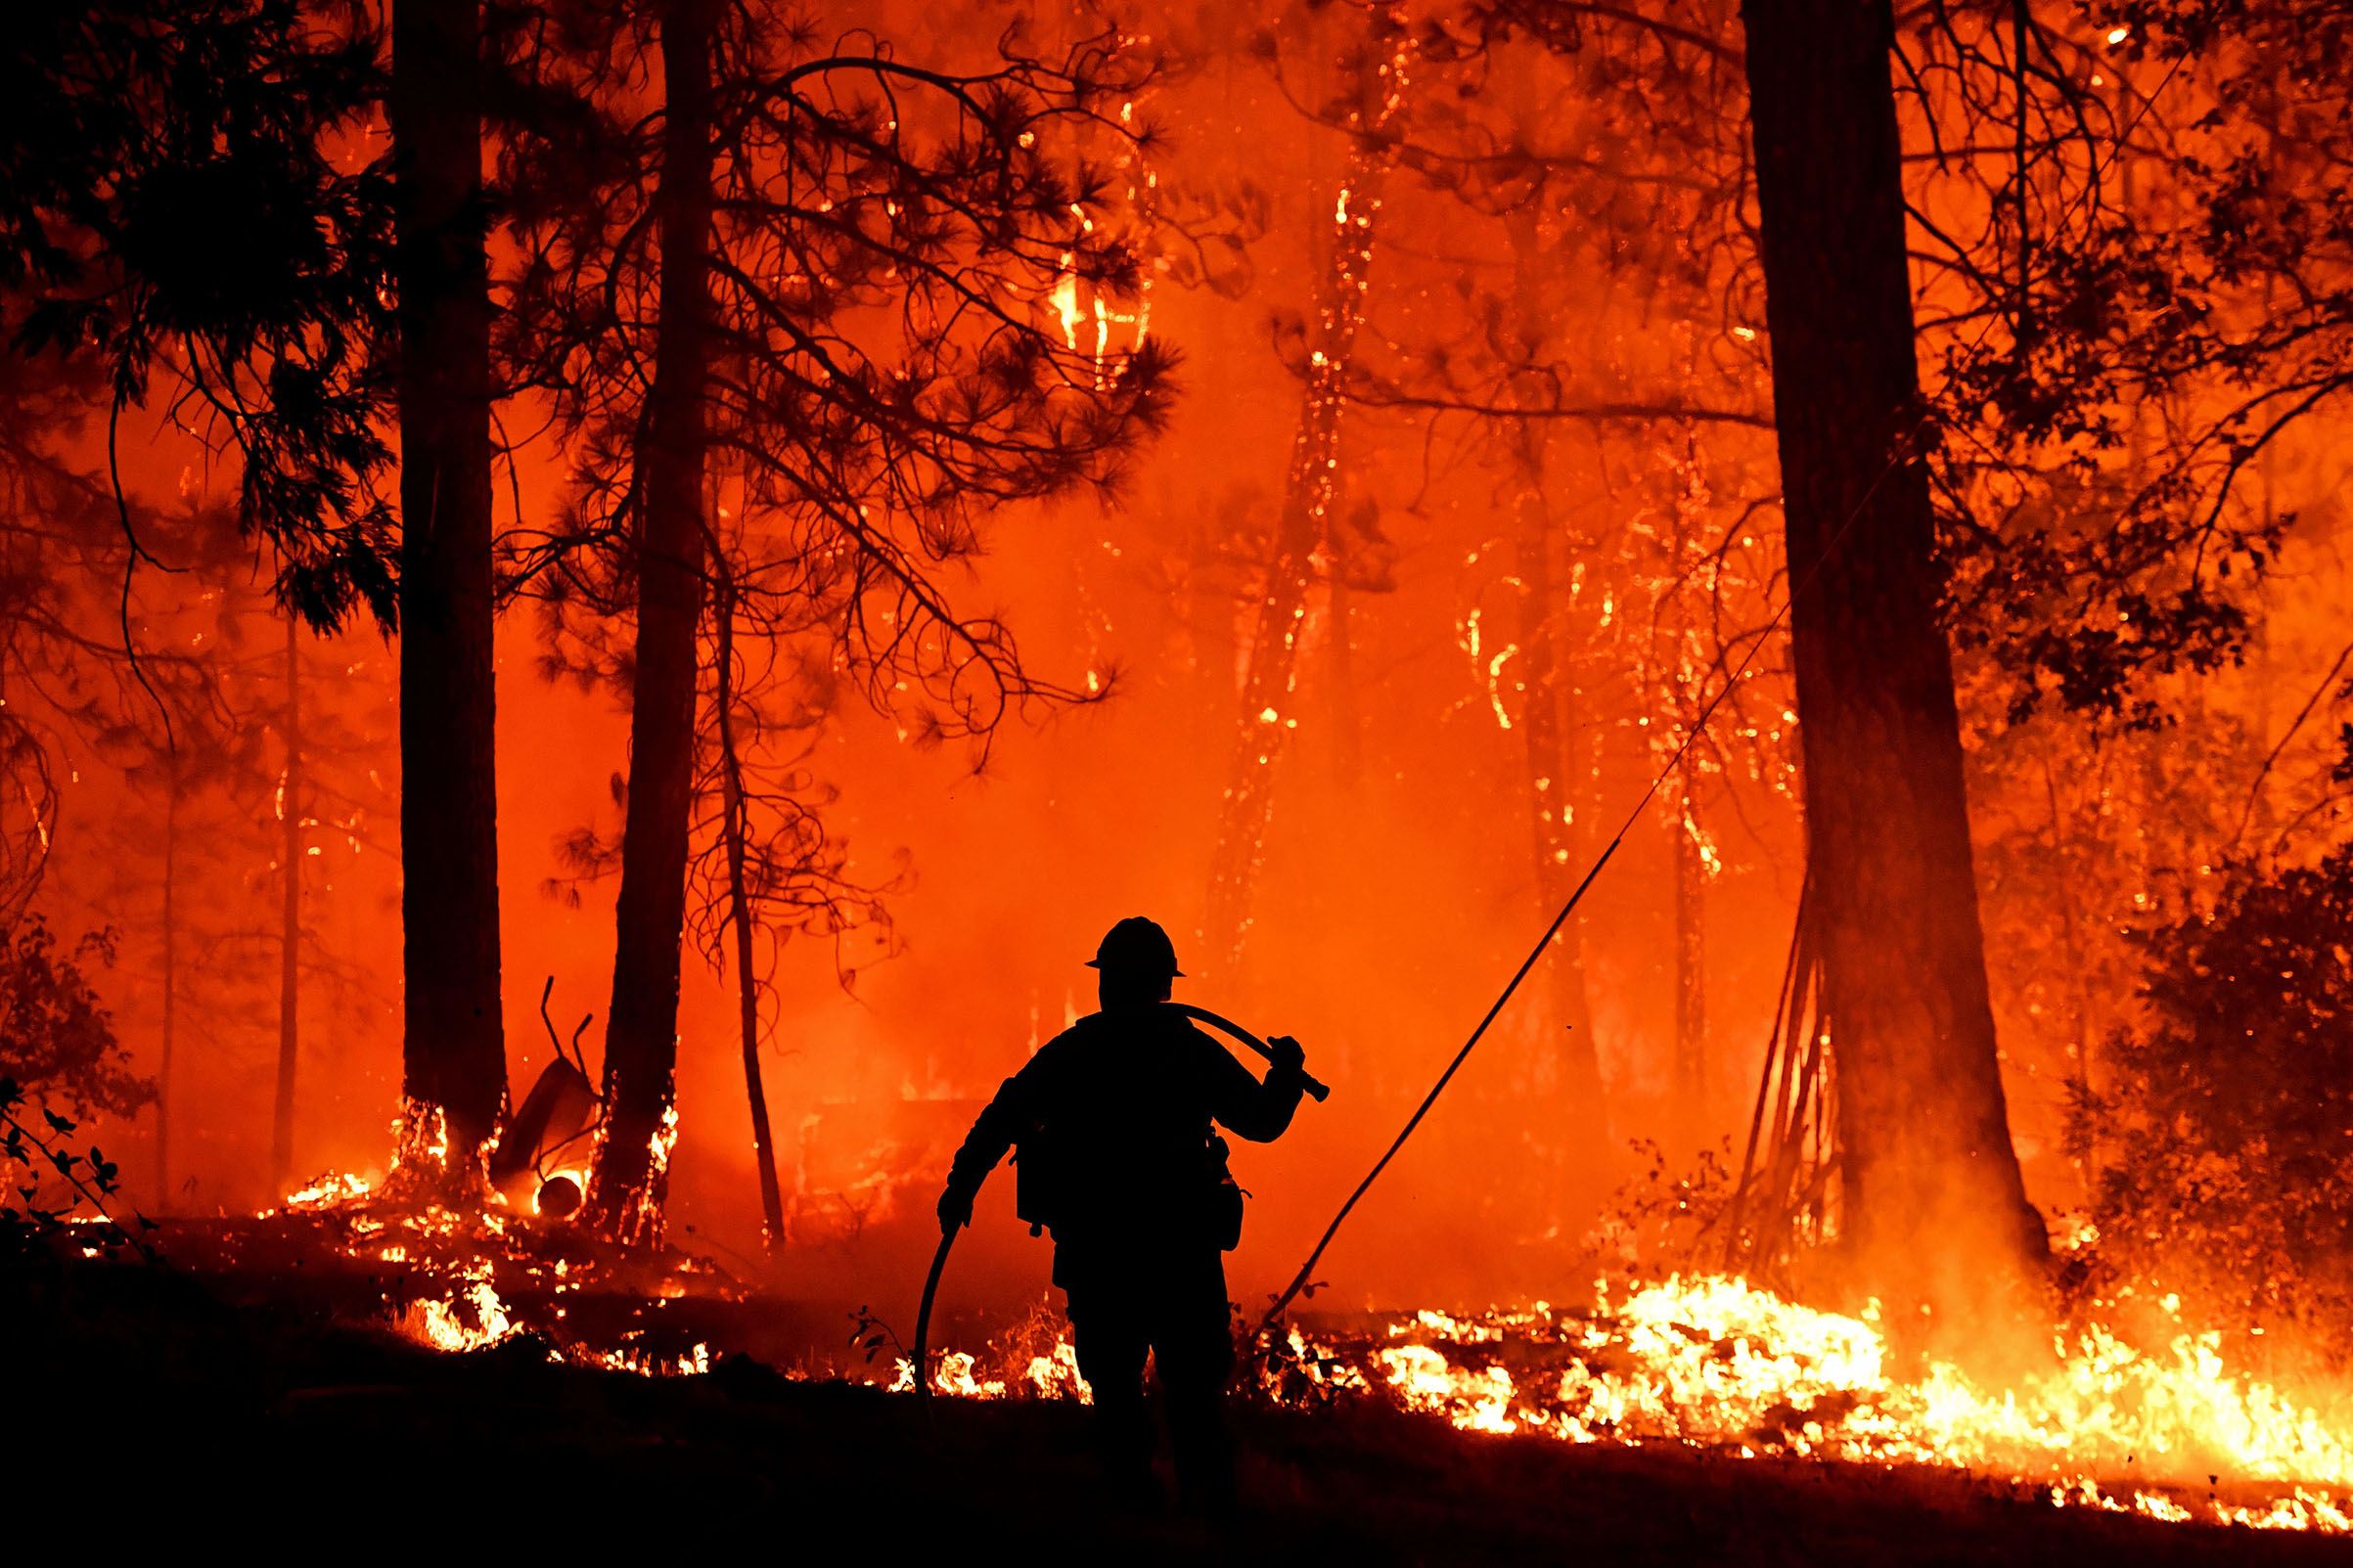 Firefighters struggle to contain backfire in the Pollard Flat area of California in the Shasta Trinity National Forest on Sept 6, 2018.